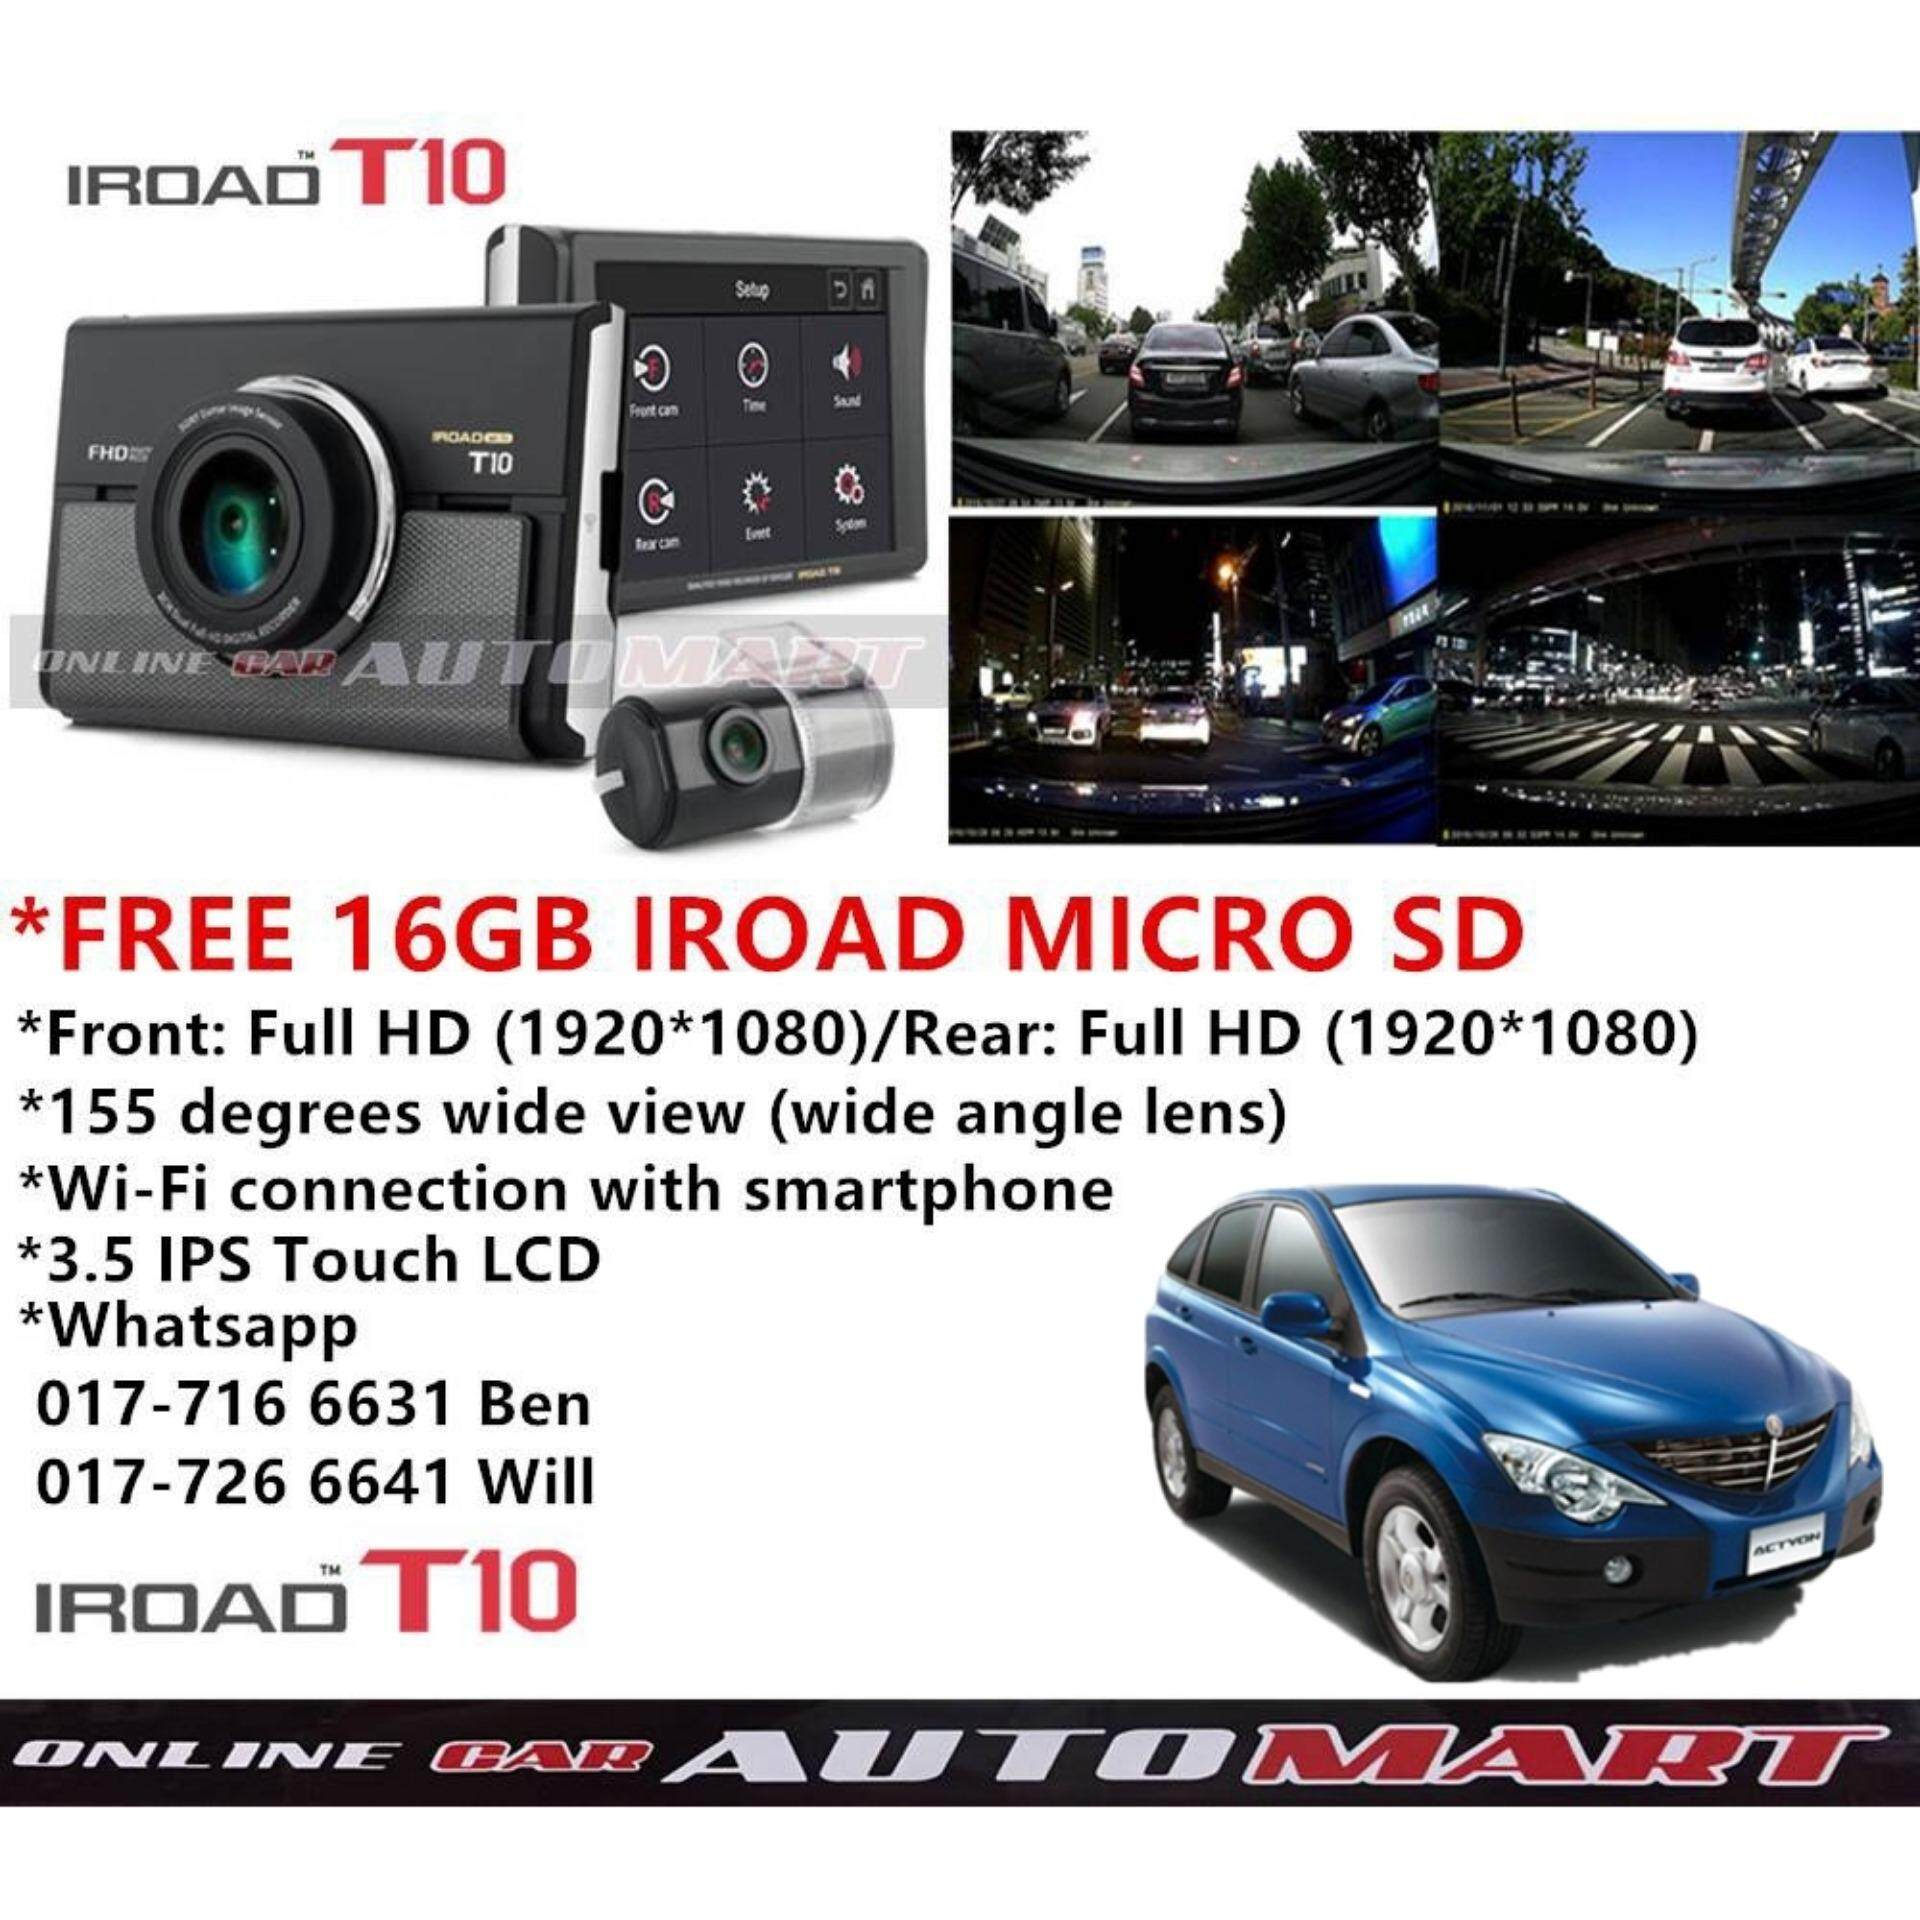 Ssangyong Actyon-iRoad T10 WIFI-LCD 2CH Blackbox Dashcam 16GB+GPS SET(WiFi Dongle, Uninterrupted Fuse Cable), FullHD(1080p), WIFI DVR Car Vehicle Video Recorder - Dash Camera Video Recorder Digital DVR Recorder